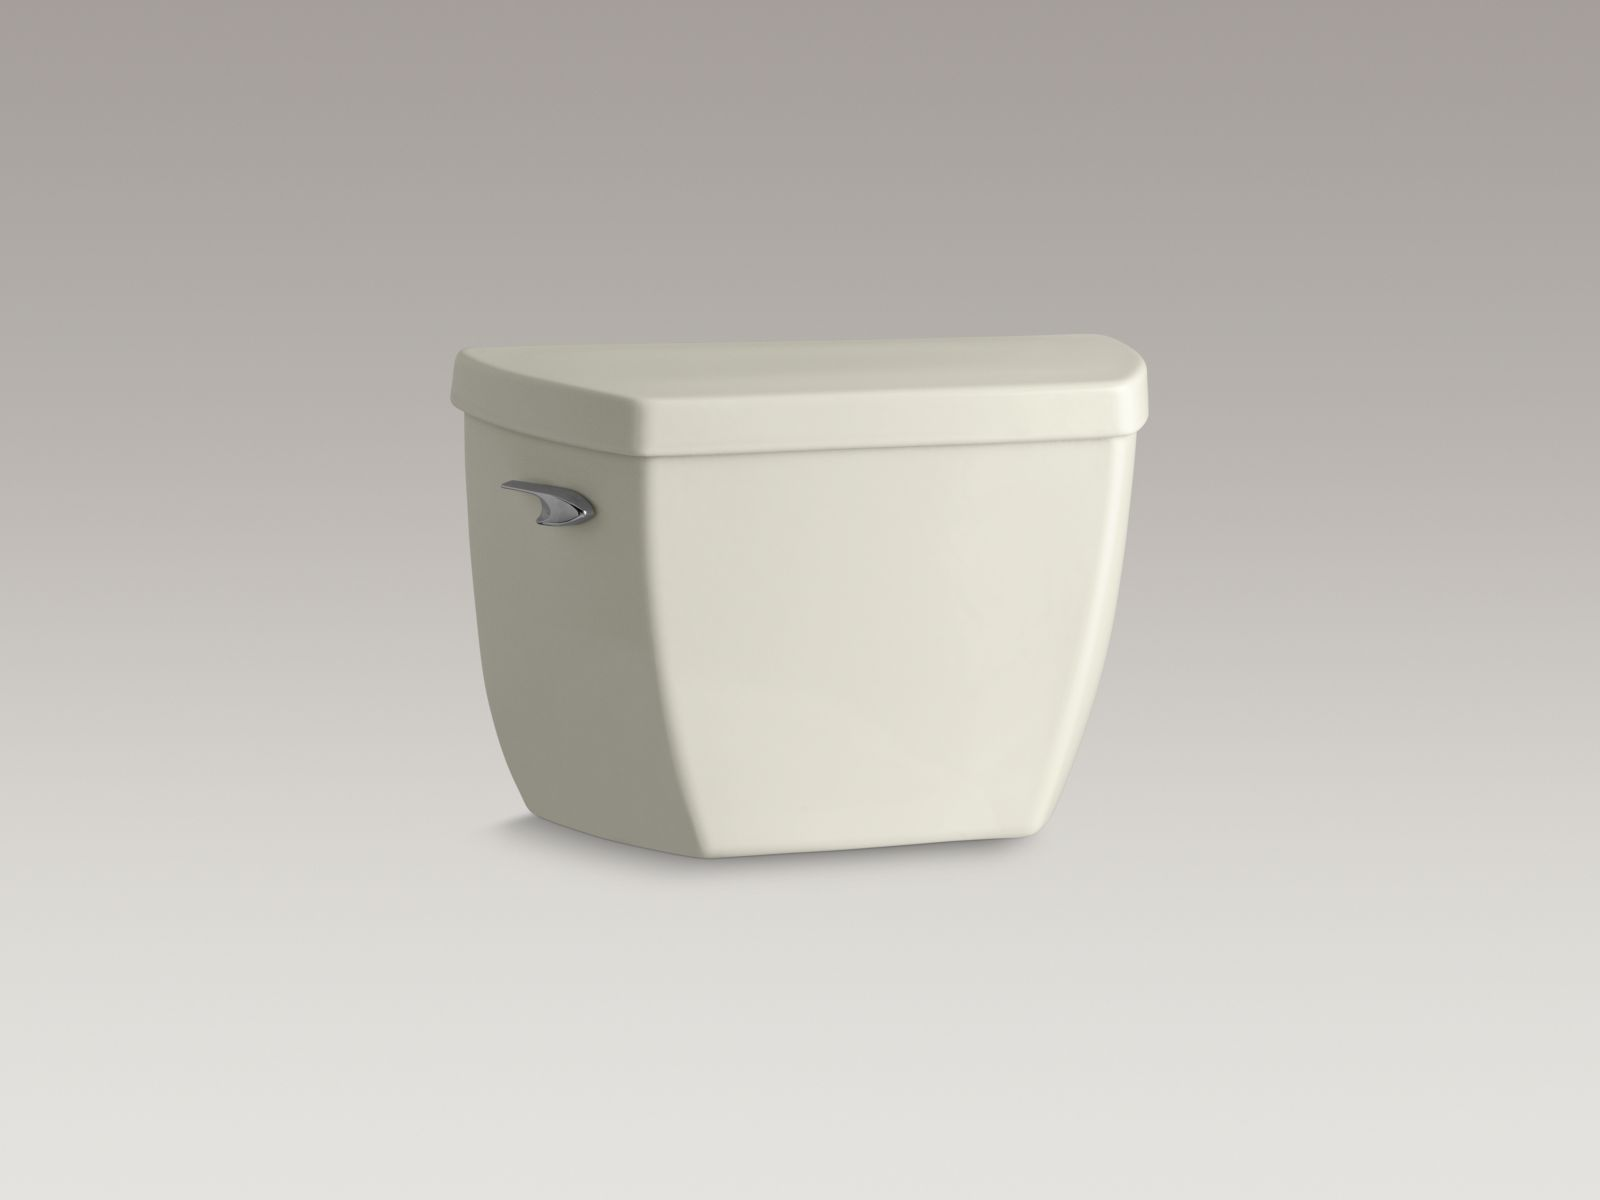 Kohler K-4645-96 Highline Classic 1.6 GPF Pressure Lite Toilet Tank with Left-hand Trip Lever Biscuit